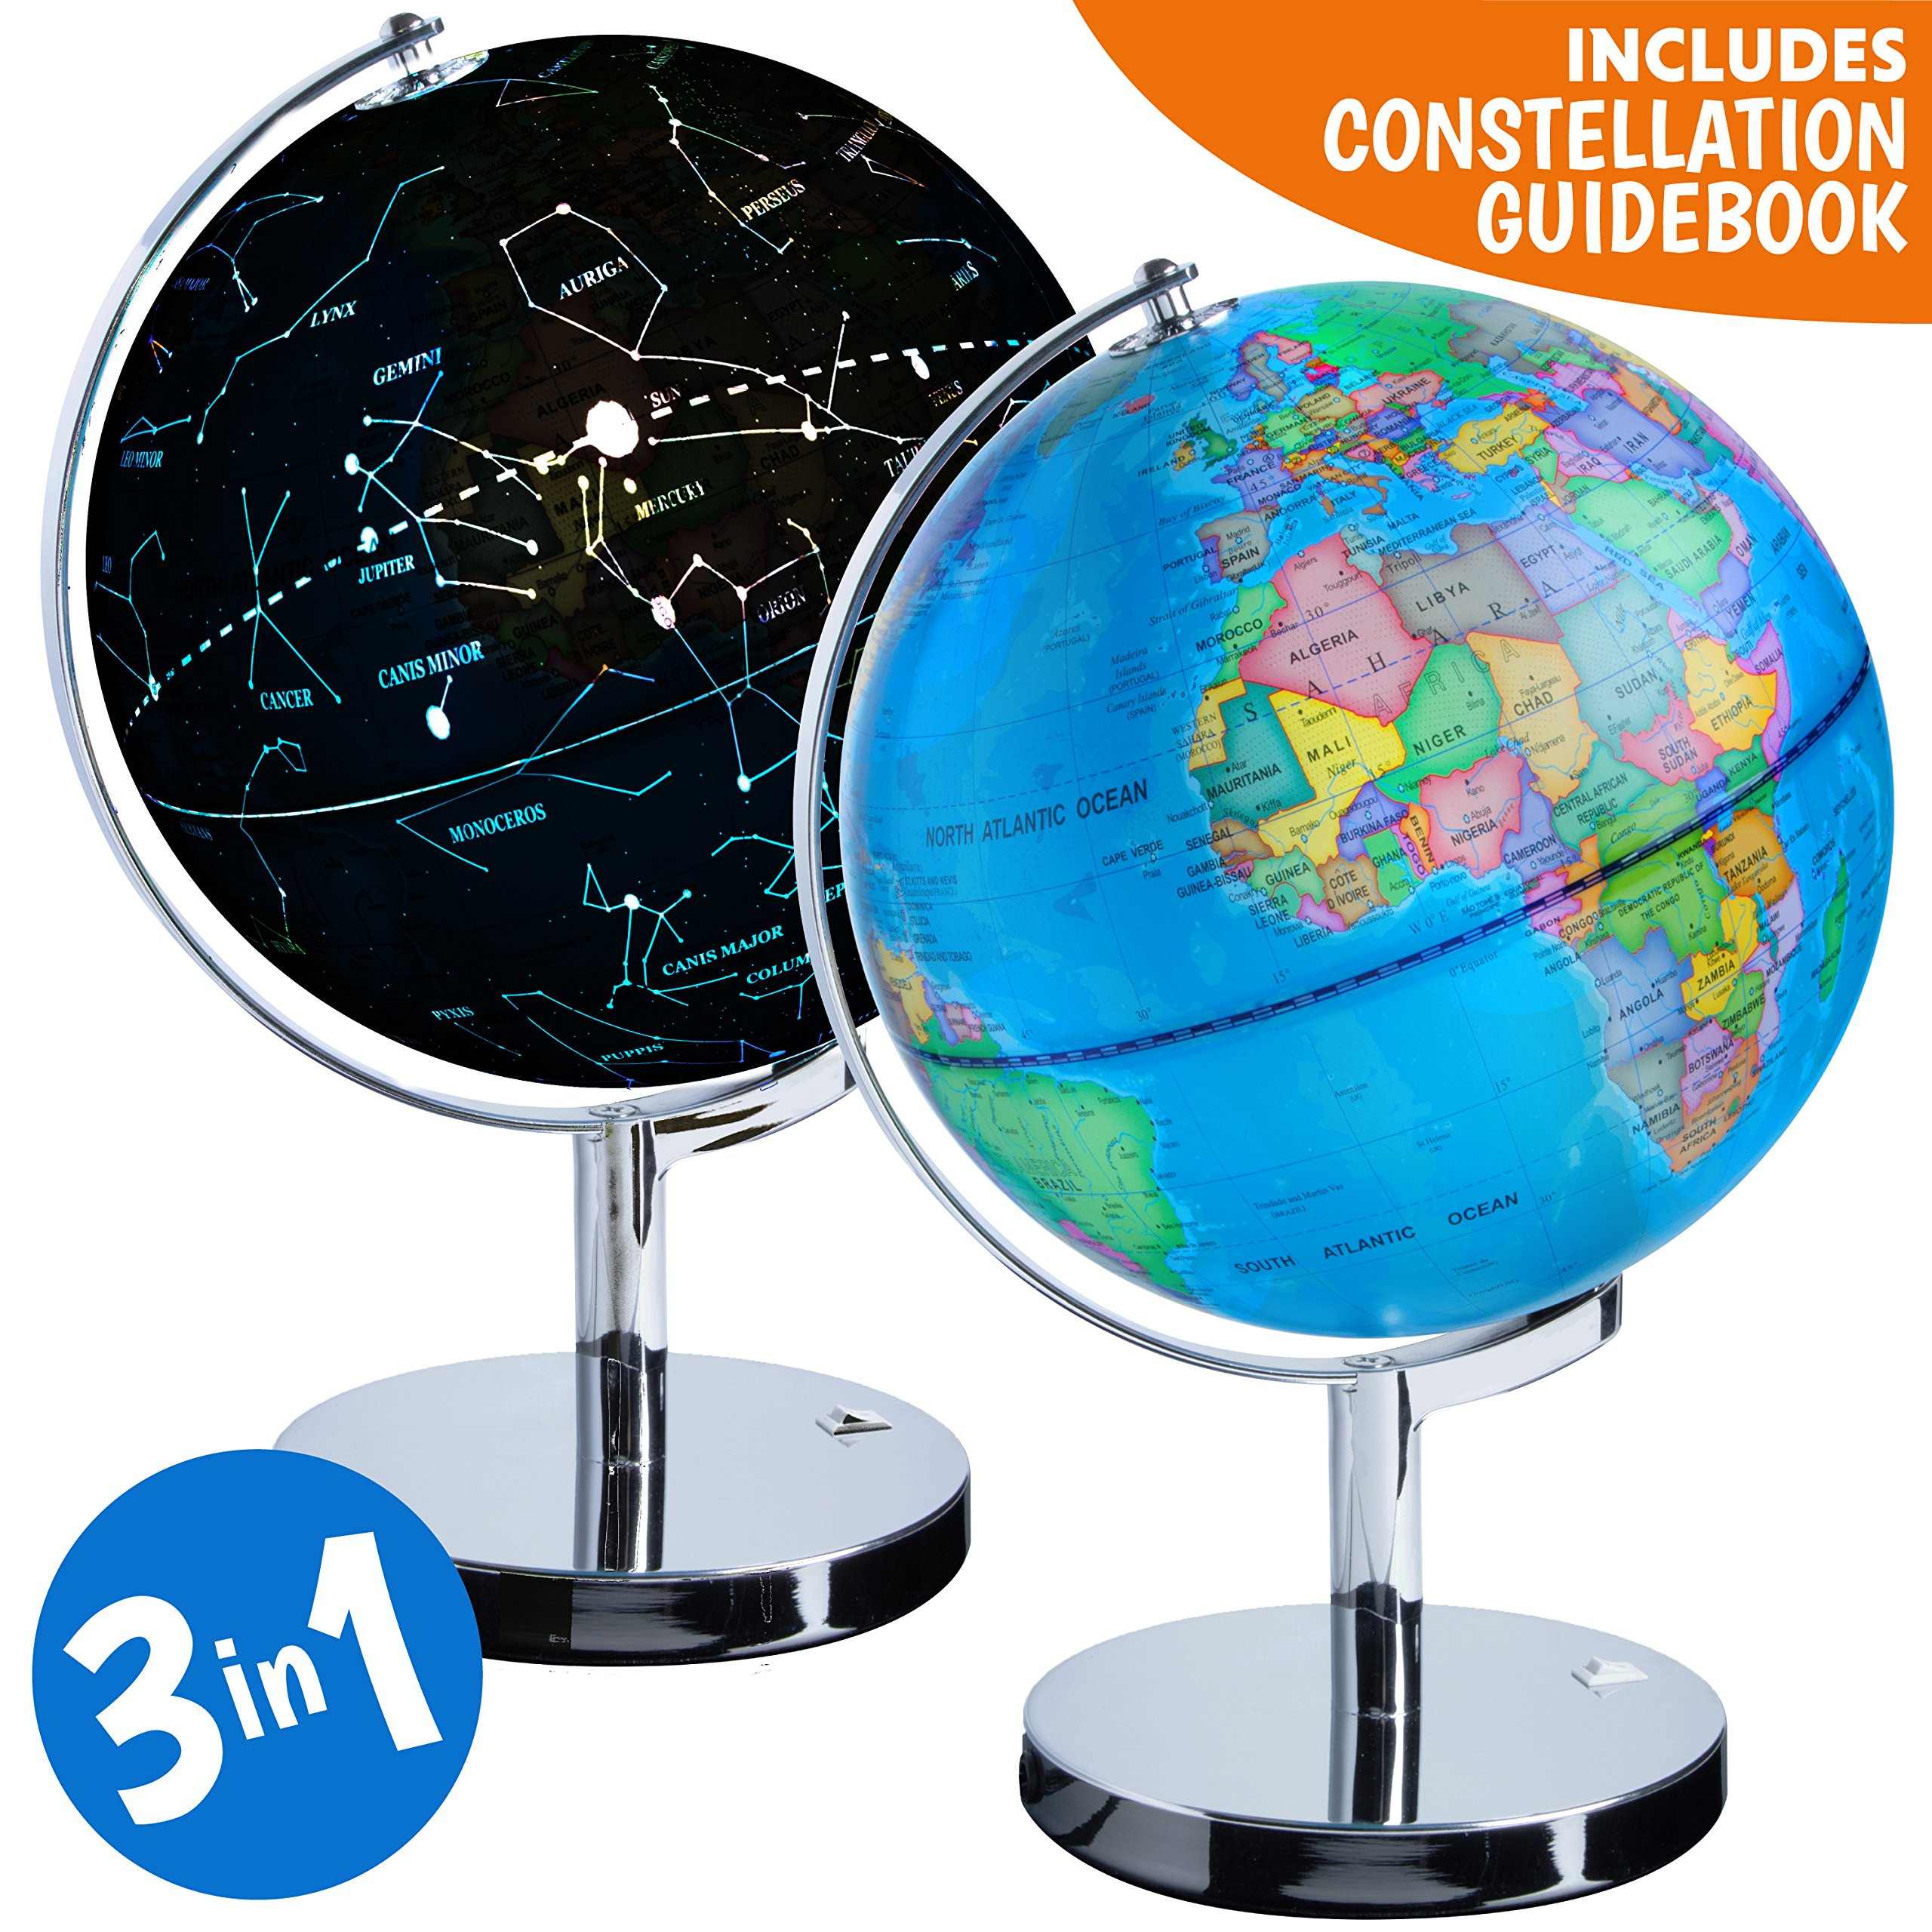 3 in 1 illuminated world globe nightlight and constellation globe our policy gumiabroncs Images